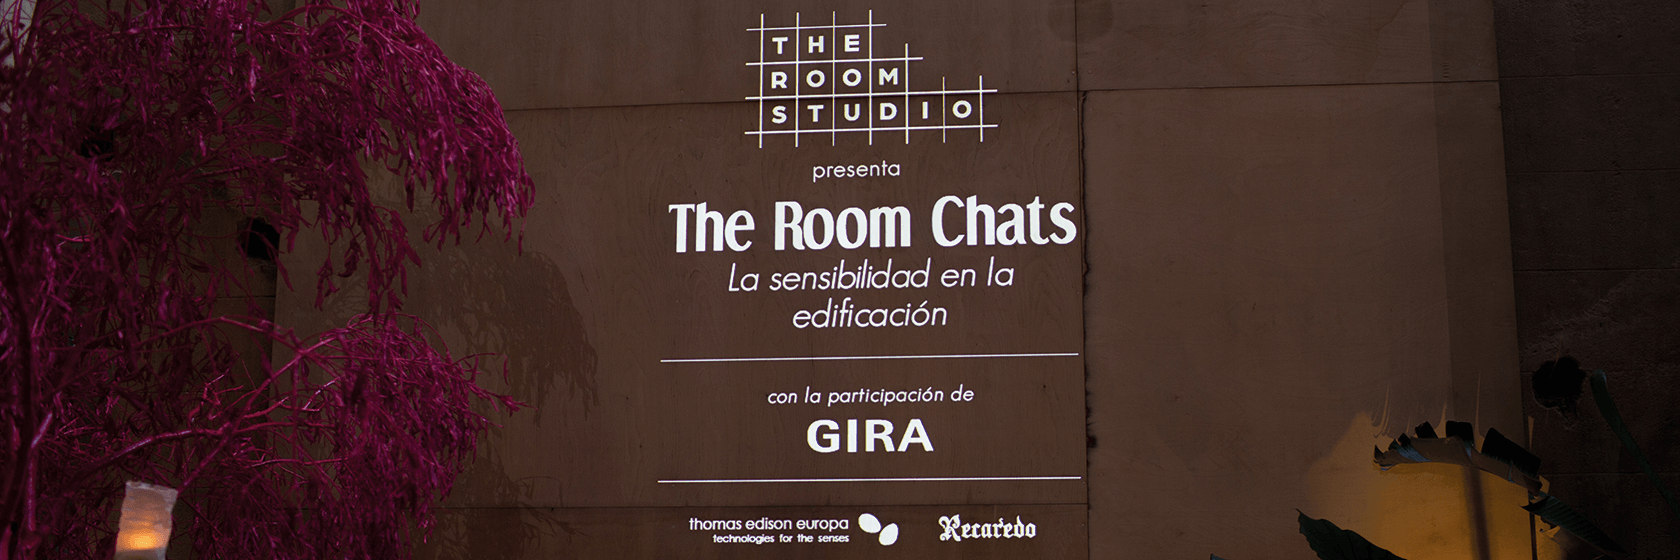 1ª Edició de The Room Chats | The Room Studio